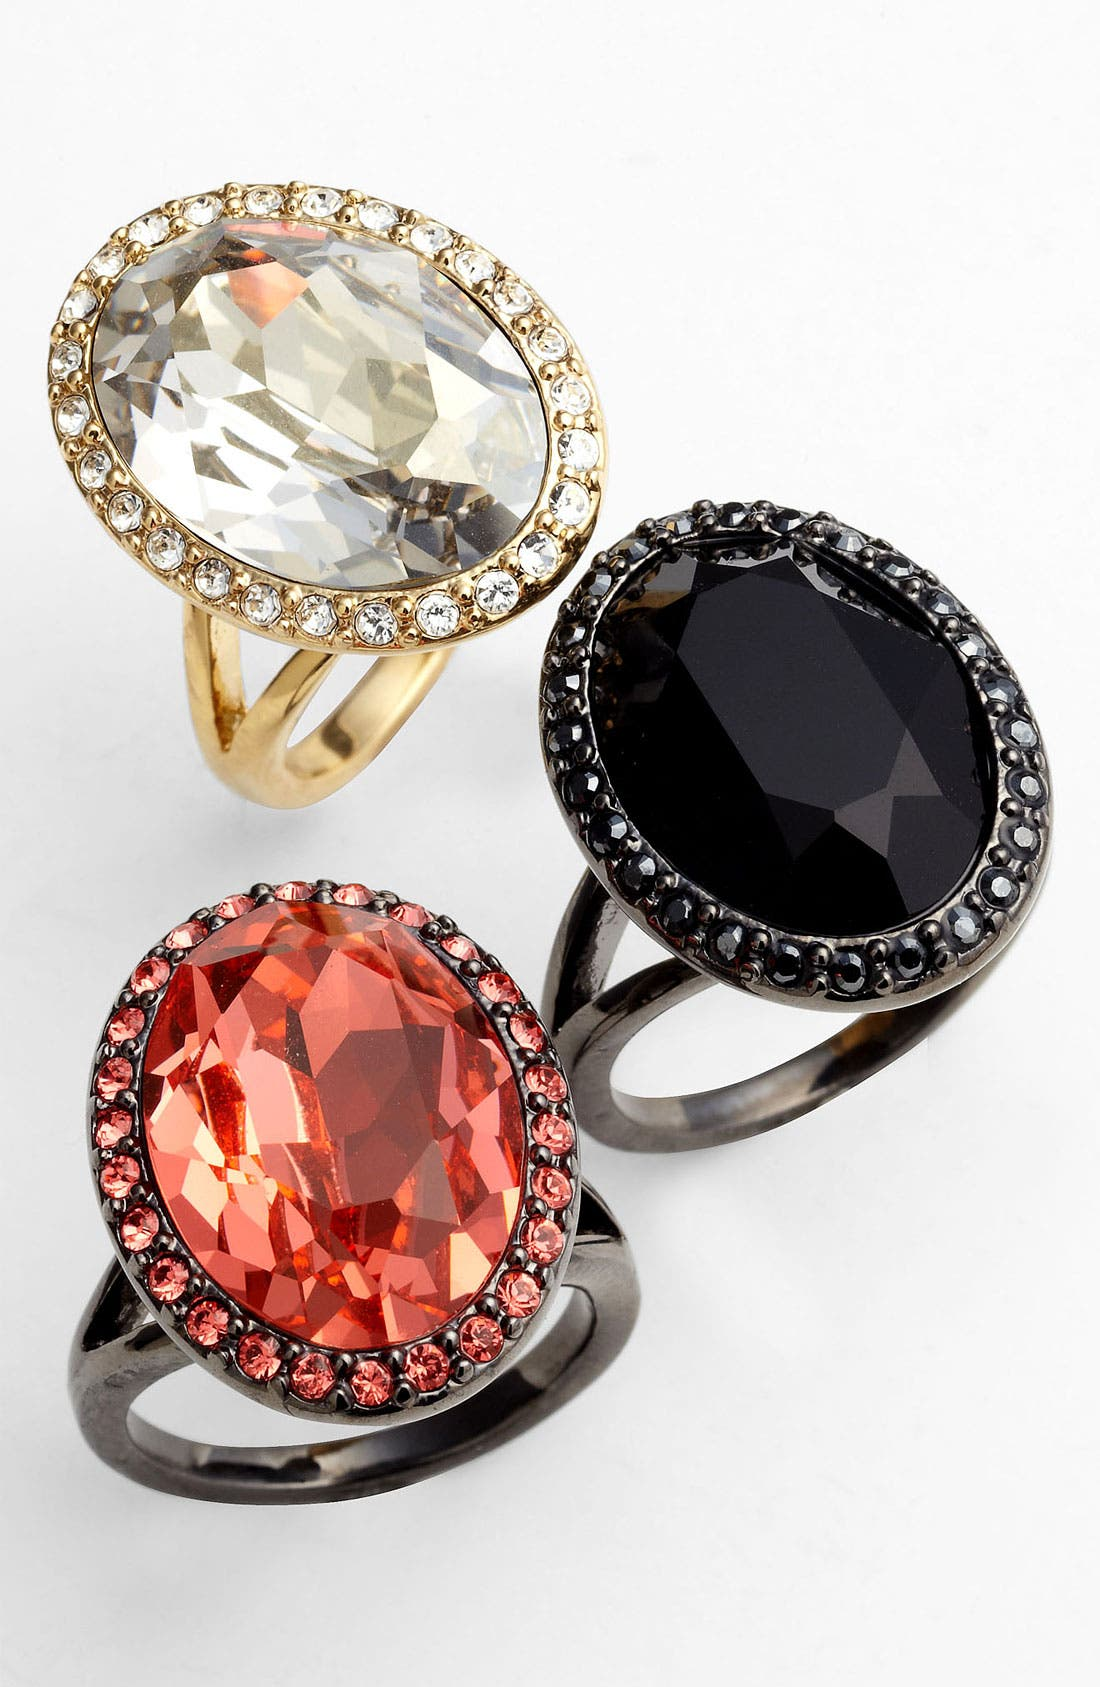 Alternate Image 1 Selected - Givenchy 'Rock Crystal' Cocktail Ring